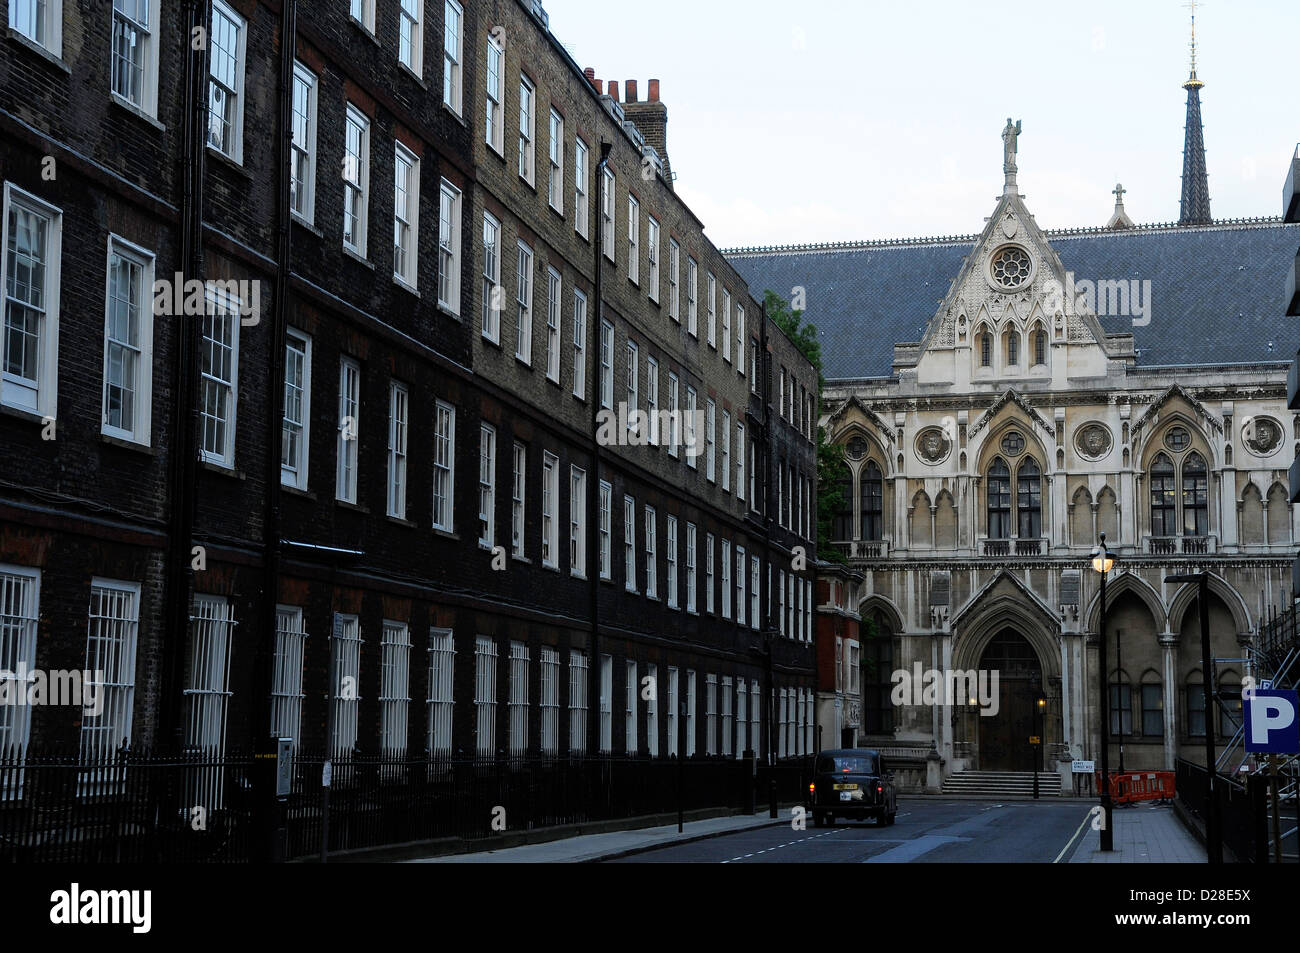 London's Royal Courts of Justice seen from Newman's Row, Lincoln's Inn Fields. 2010. Stock Photo